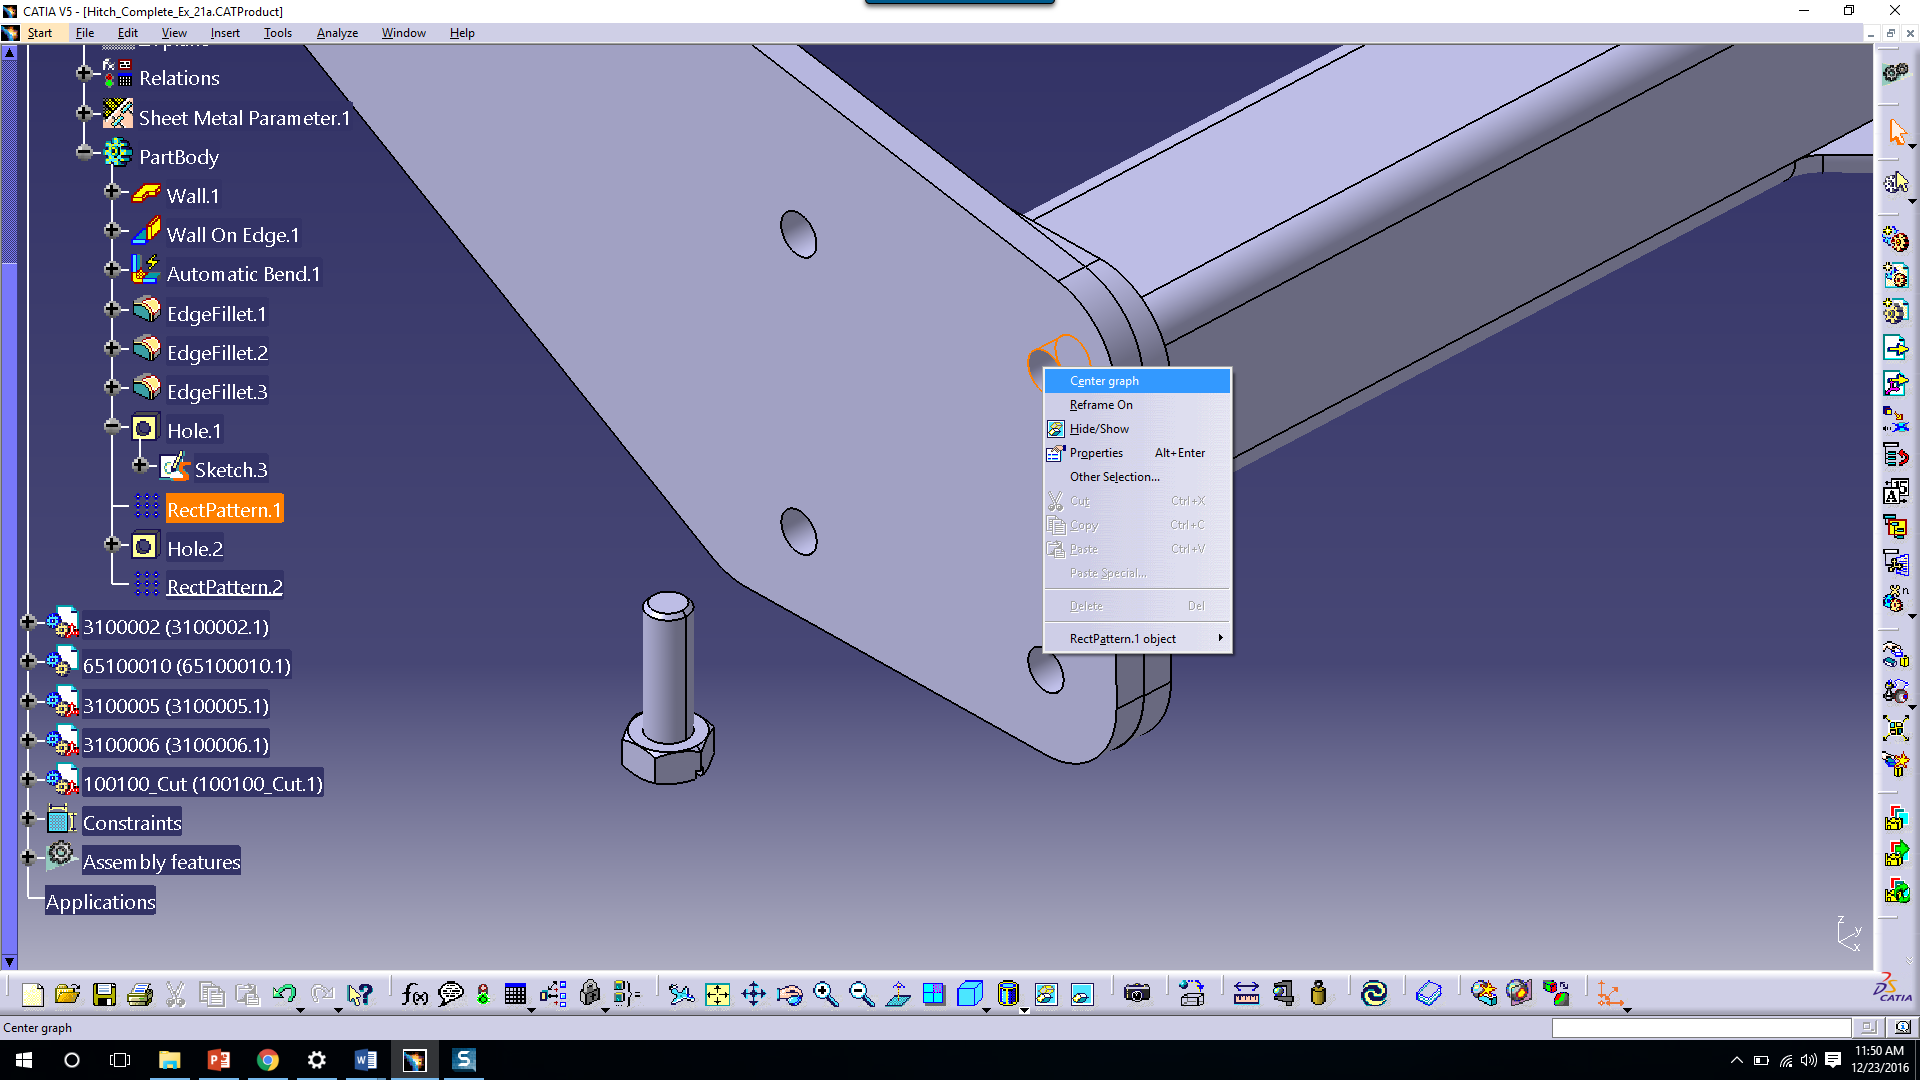 Reuse Pattern in CATIA V5 - Rand 3D: Insights from Within